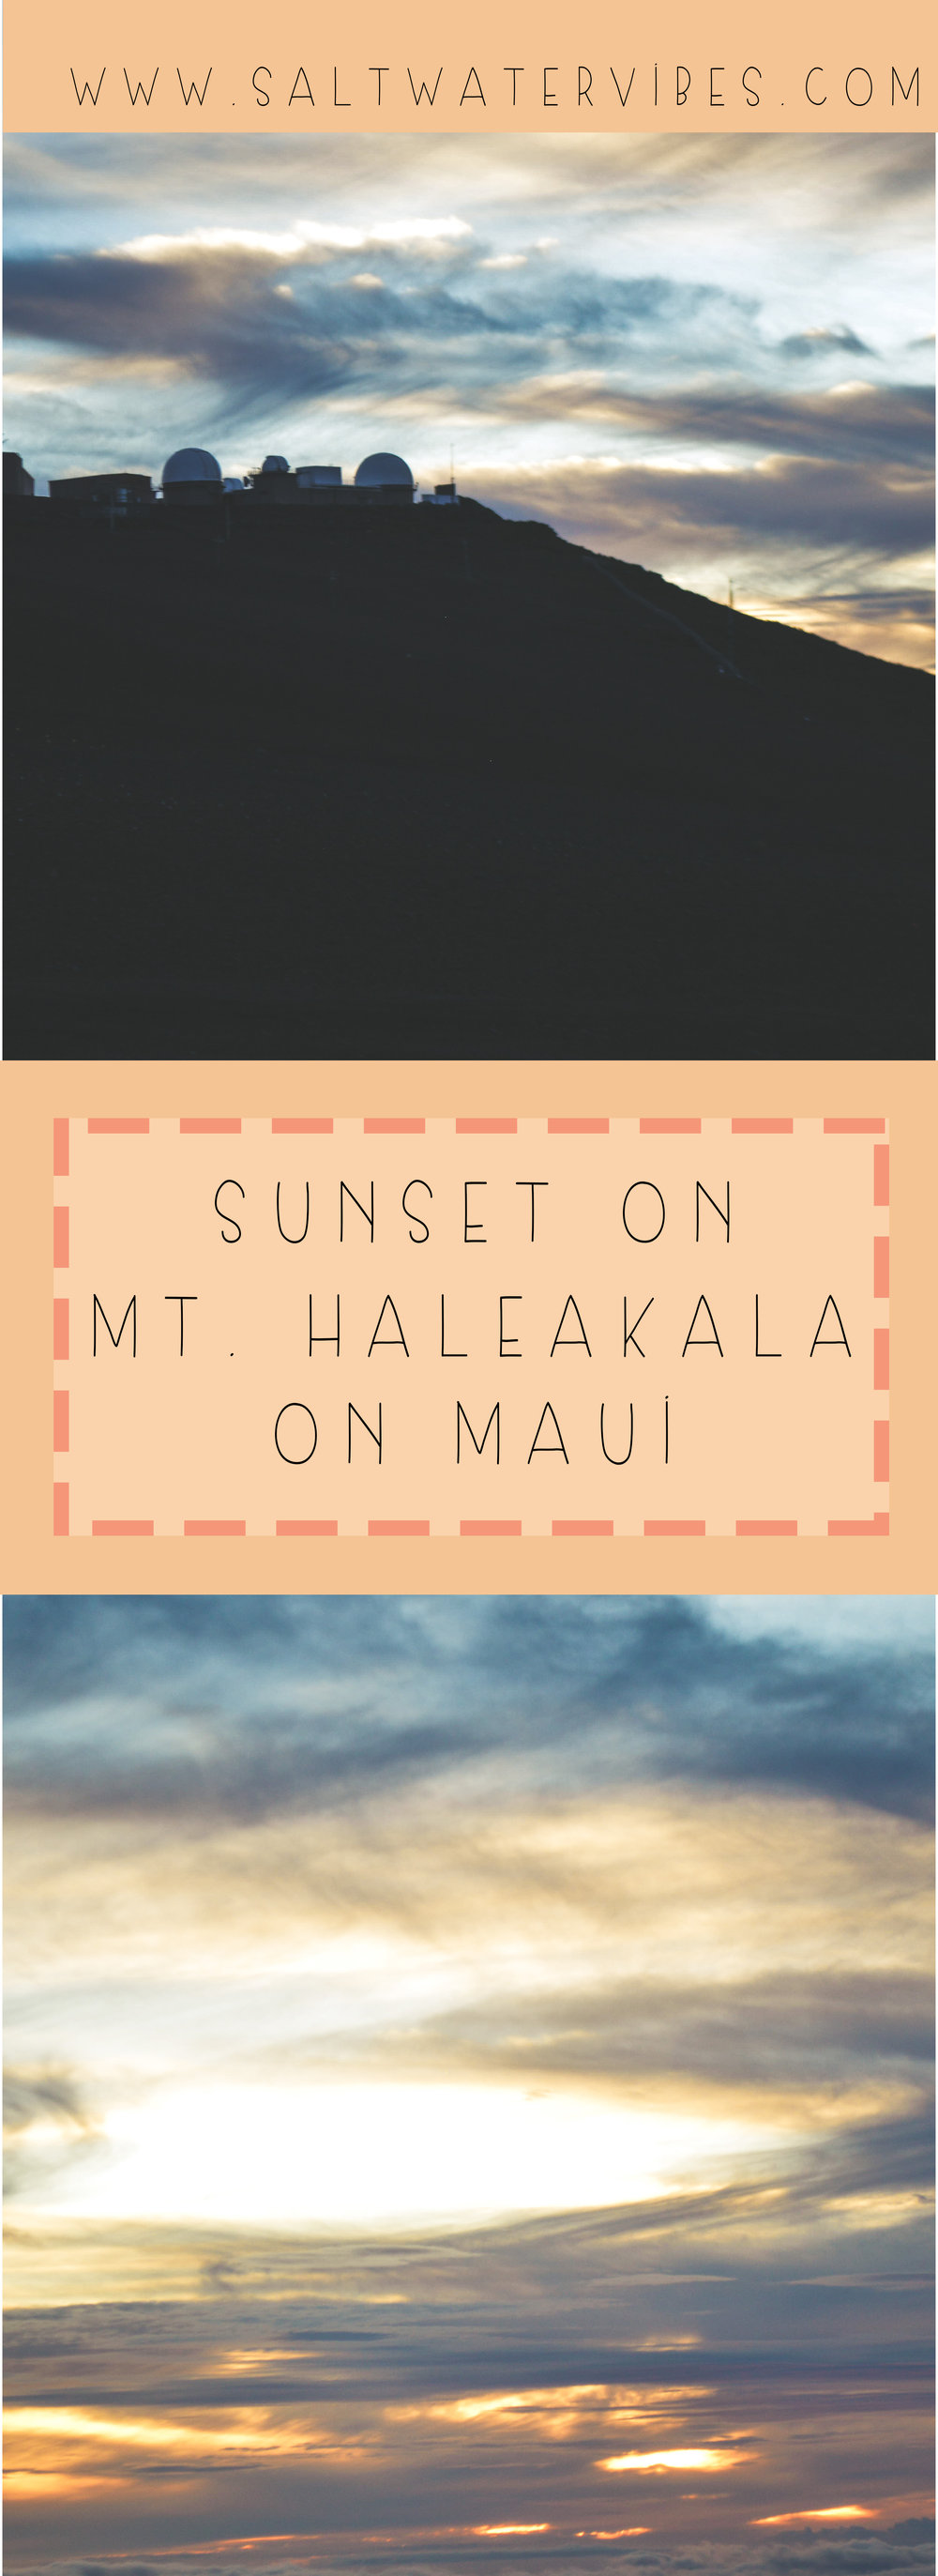 Sunset at Mt. Haleakala Maui + SaltWaterVibes